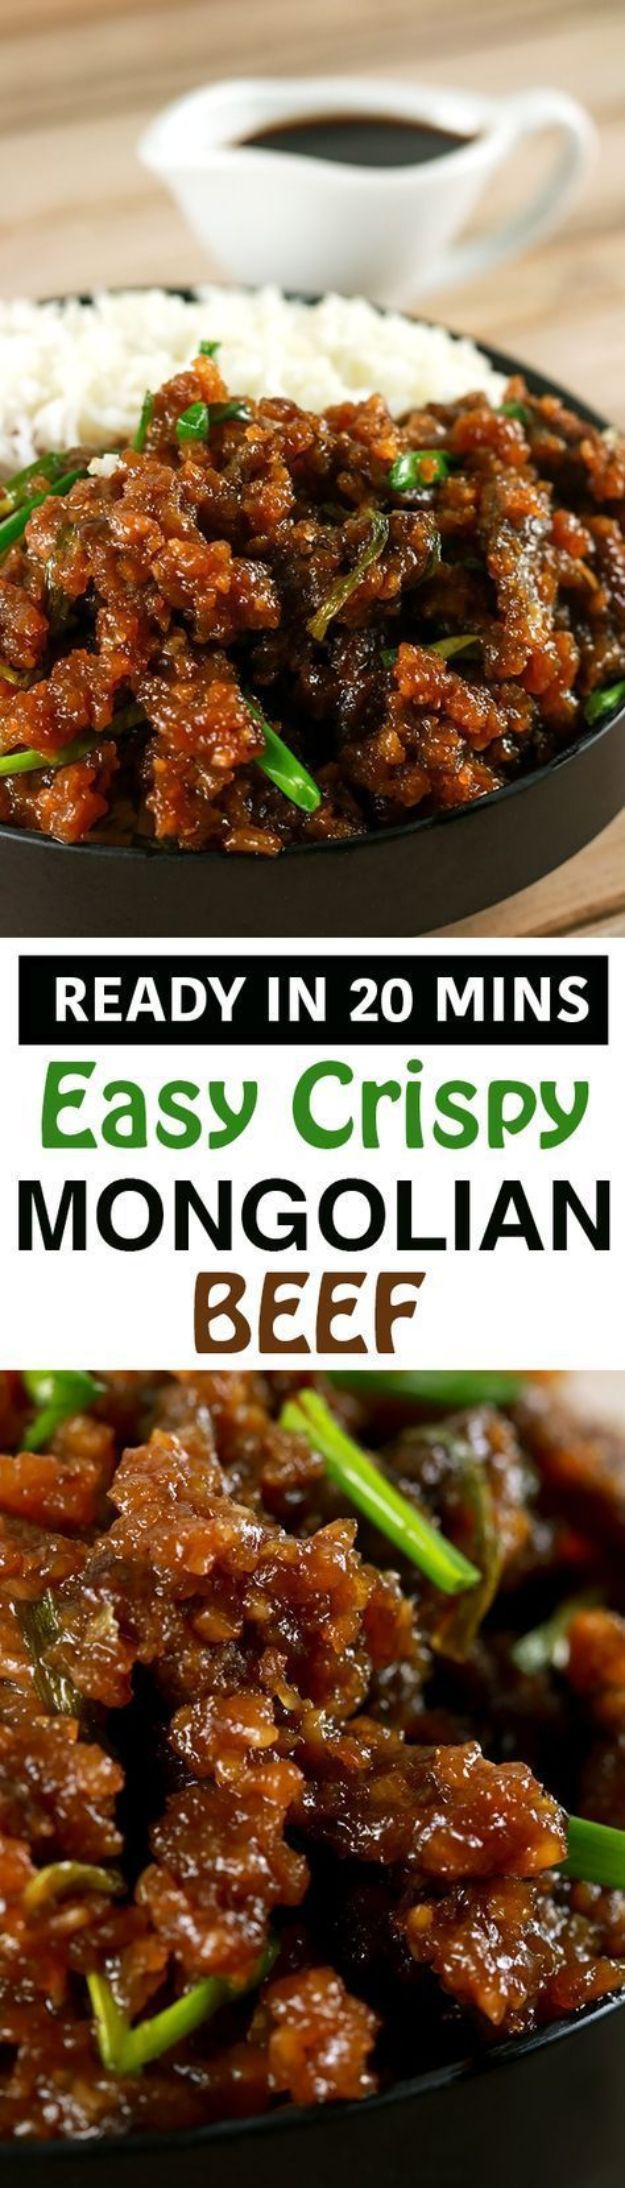 Easy Dinner Recipes - Easy Crispy Mongolian Beef - Quick and Simple Dinner Recipe Ideas for Weeknight and Last Minute Supper - Chicken, Ground Beef, Fish, Pasta, Healthy Salads, Low Fat and Vegetarian Dishes - Easy Meals for the Family, for Two, for One and Cook Ahead Crockpoit Dinners - Cheap Casseroles and Budget Friendly Foods to Make at Home http://diyjoy.com/easy-dinner-recipes